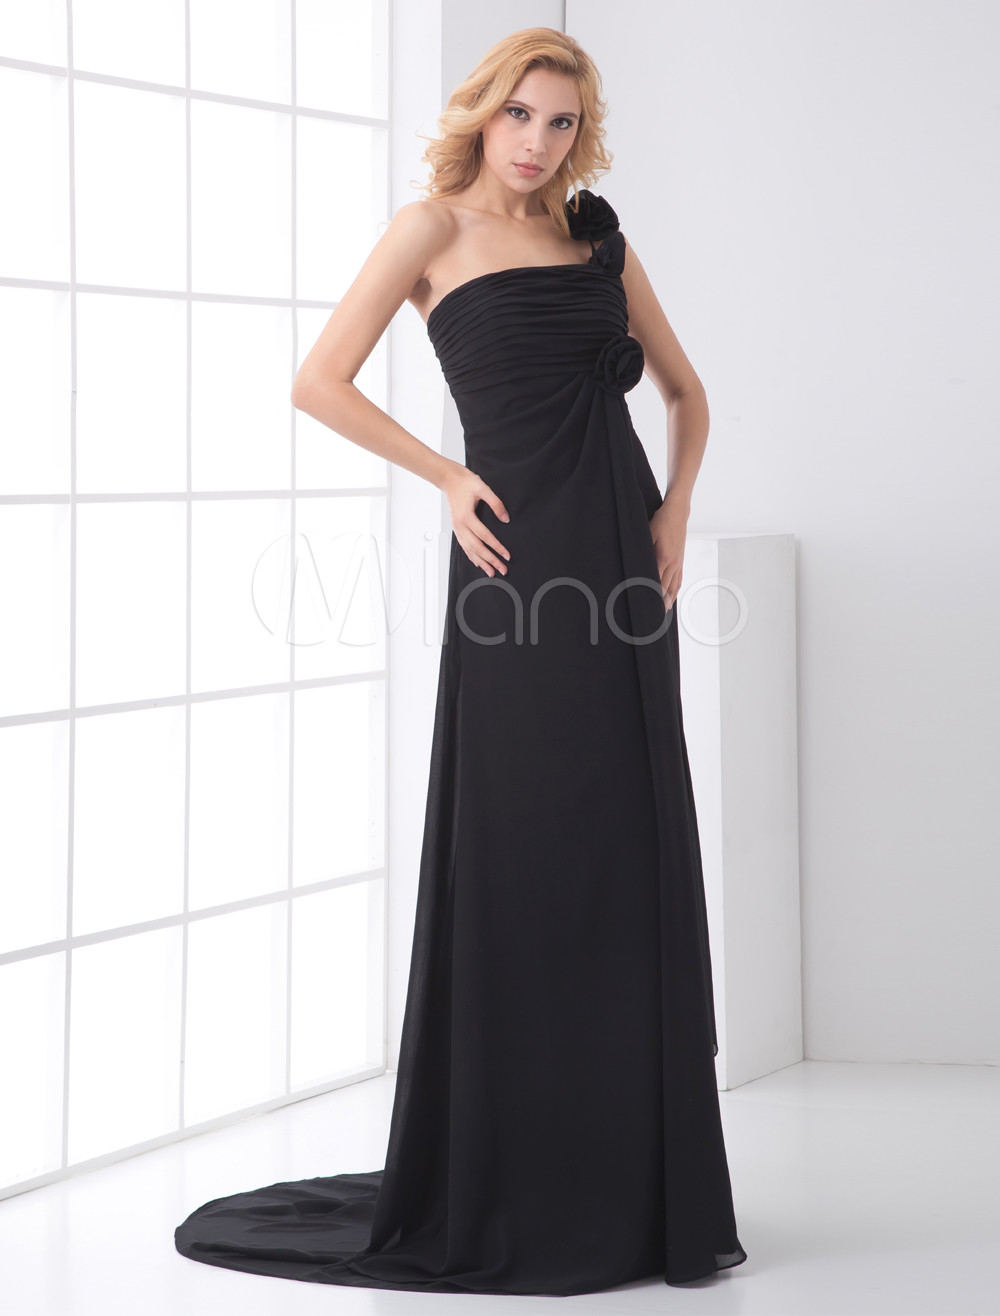 A-line Black Chiffon Floral One-Shoulder Court Train Wedding Bridesmaid Dress